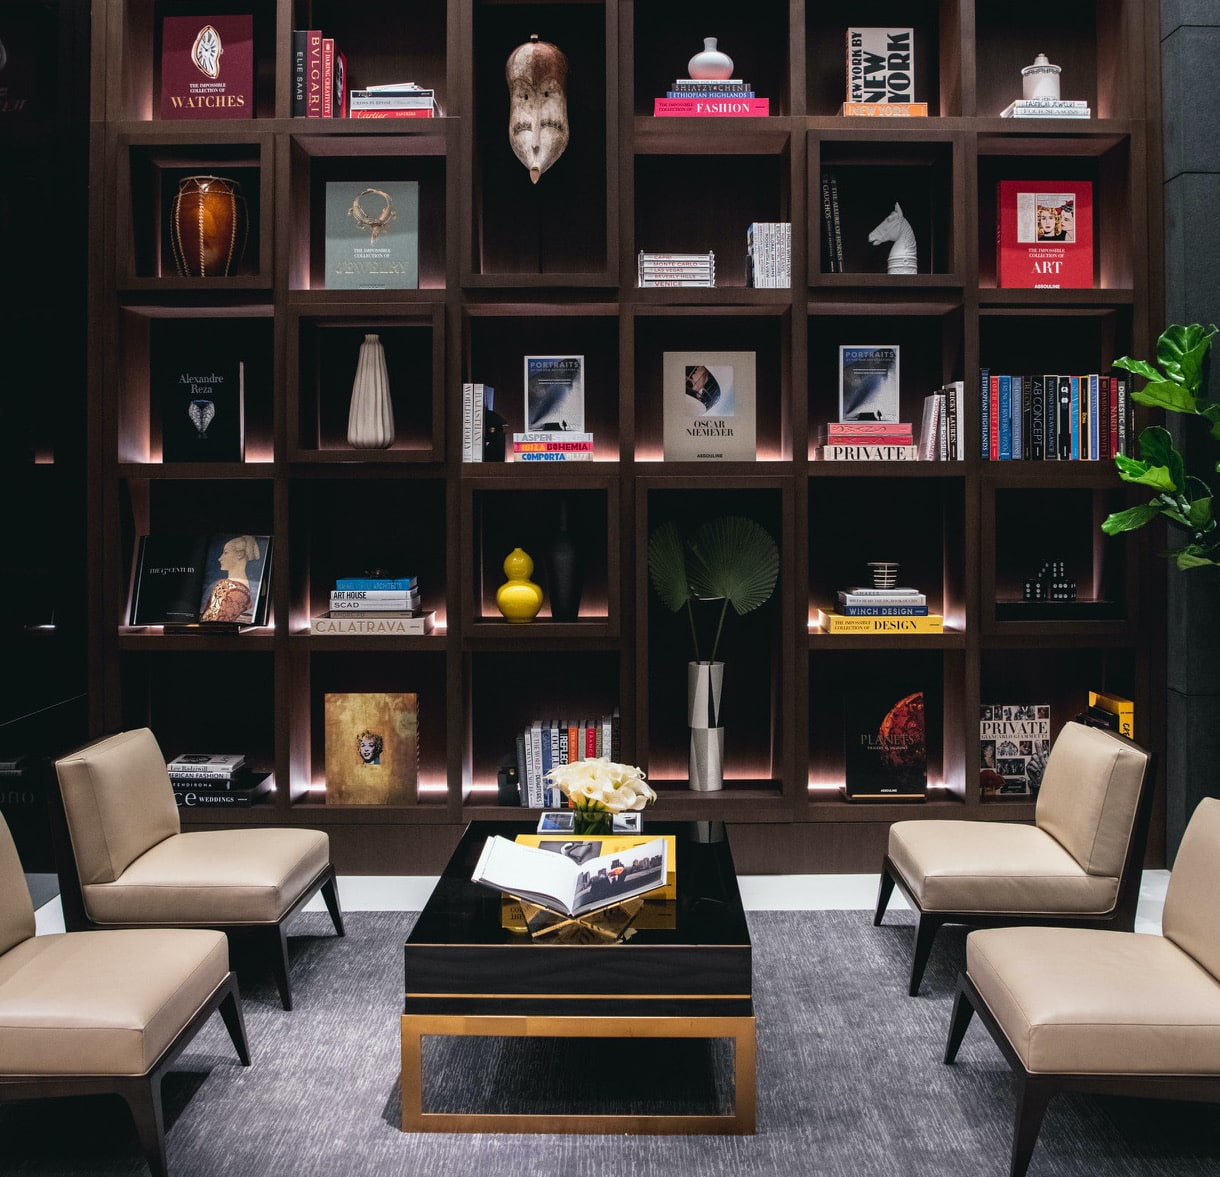 The library at 277 5th Avenue, a luxury condominium in Manhattan, designed by Alex Assouline